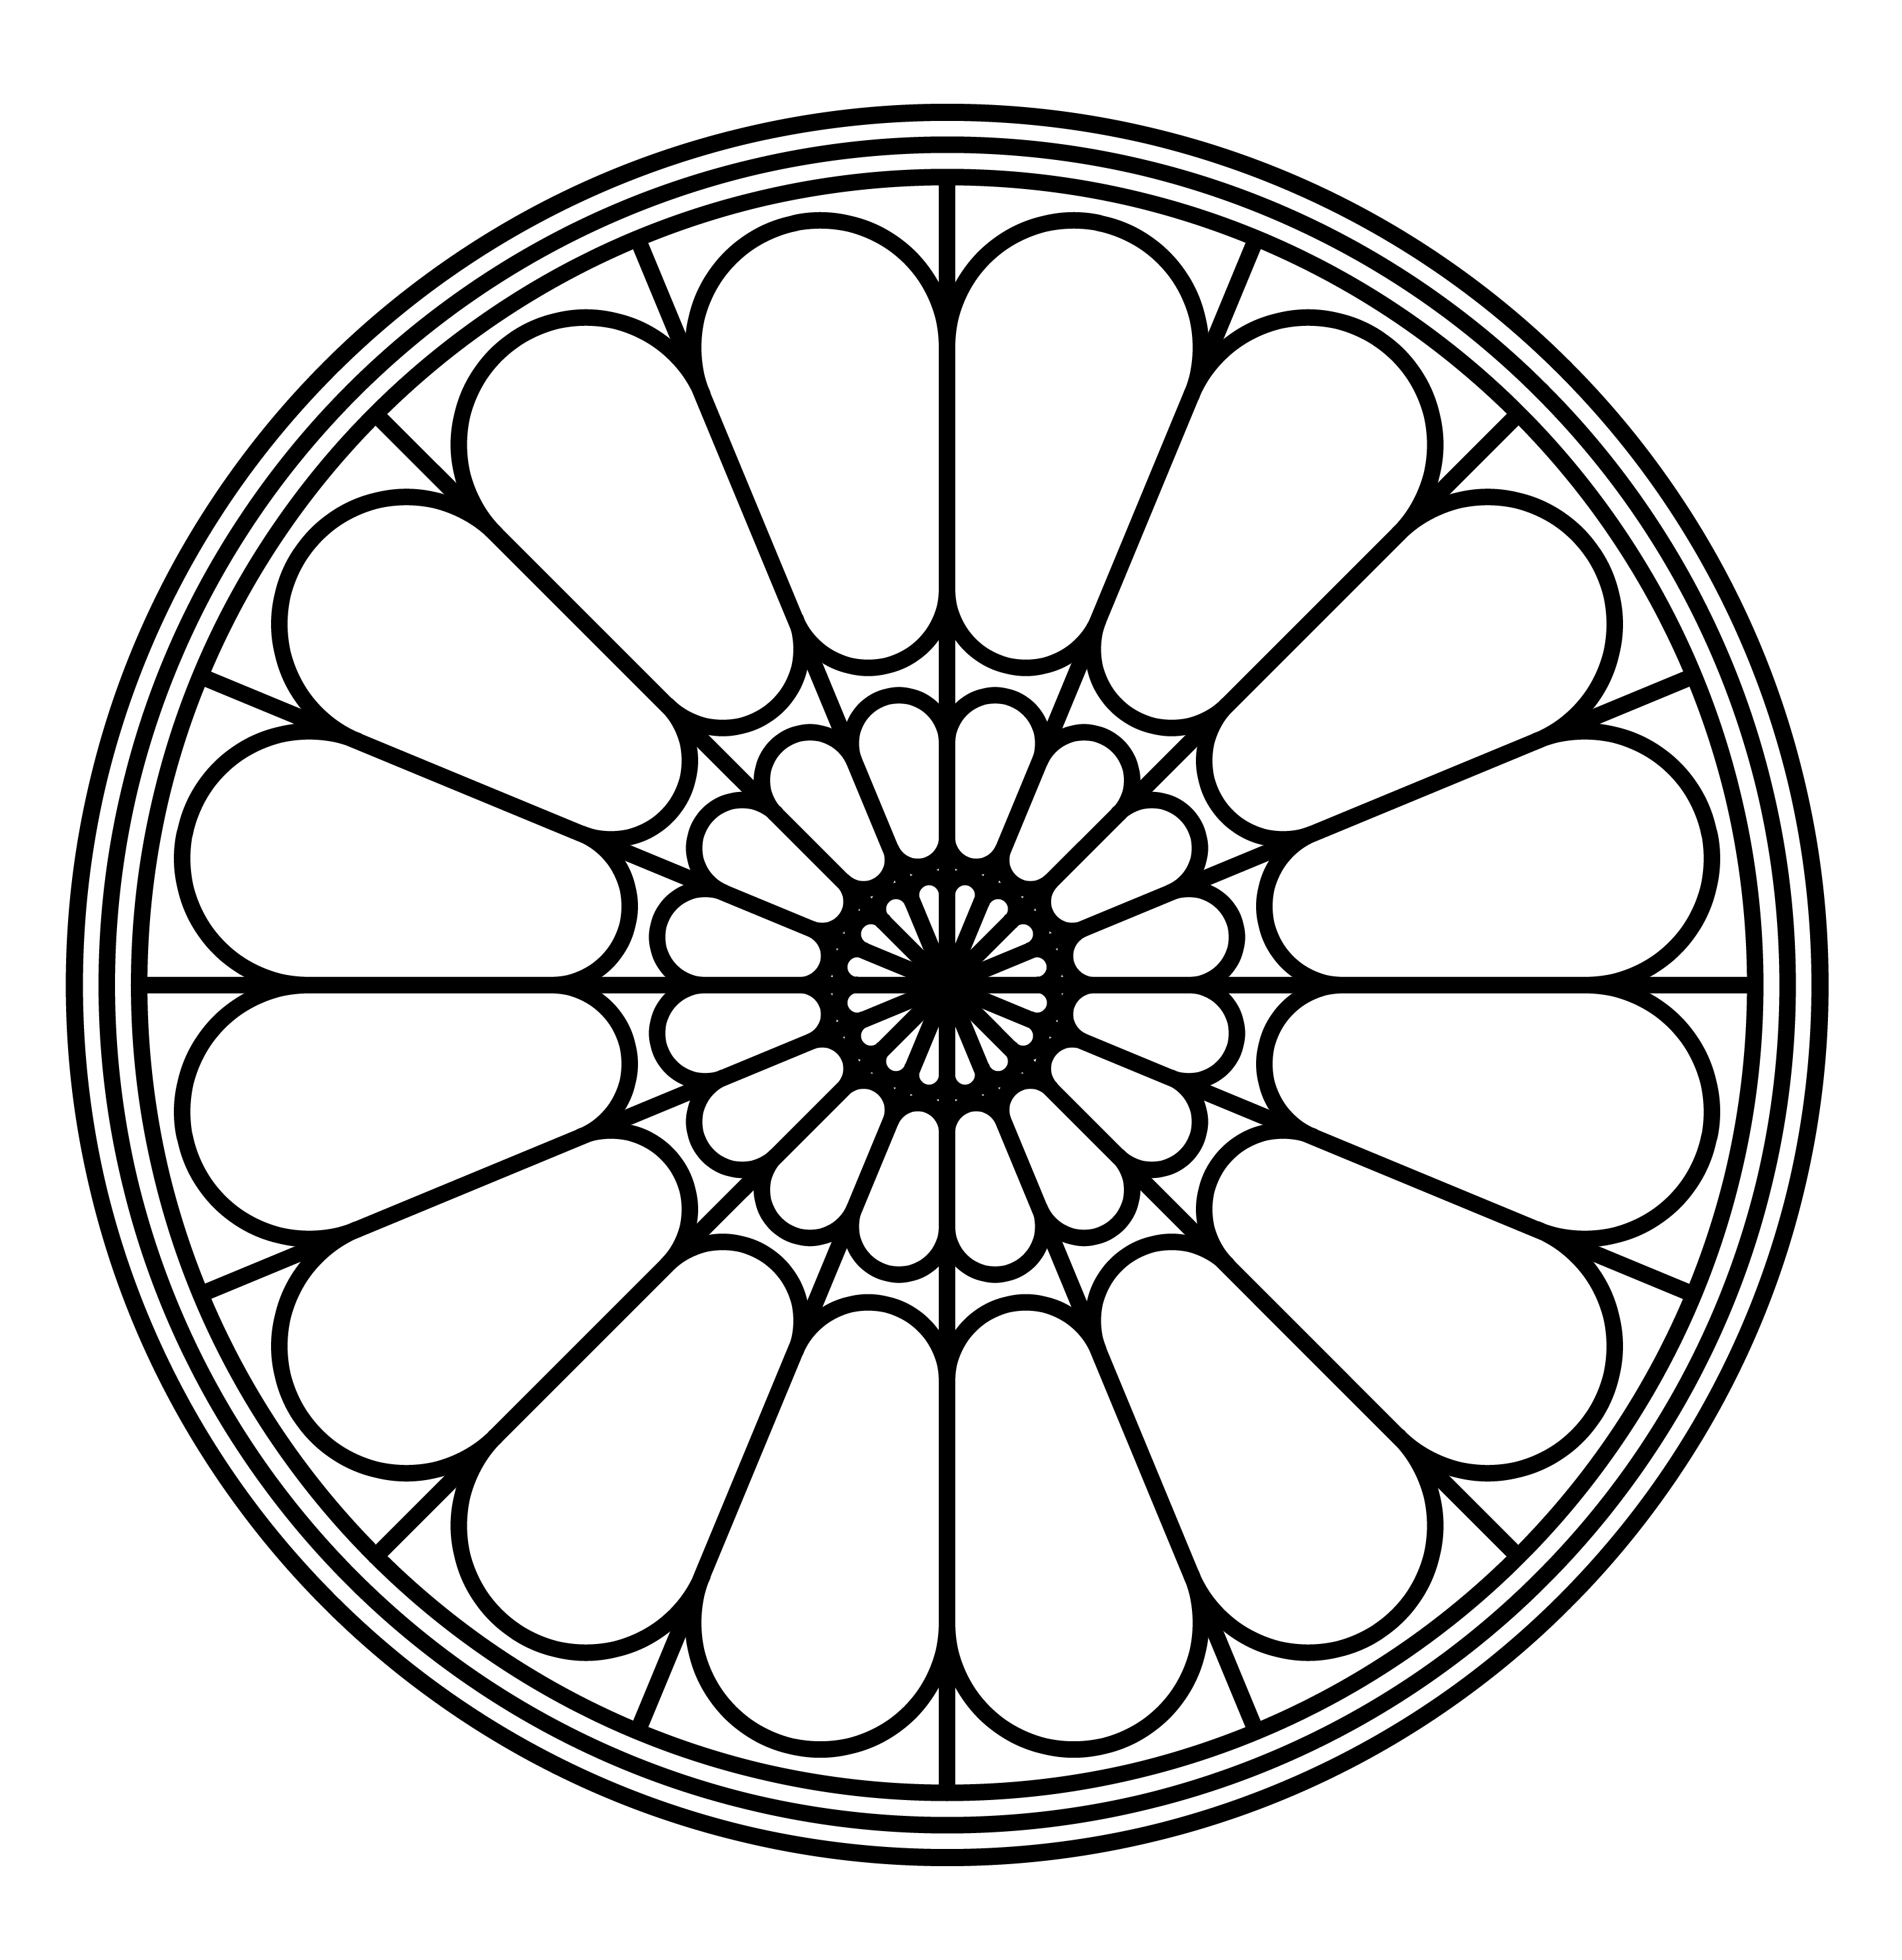 Rose window clipart - Clipground